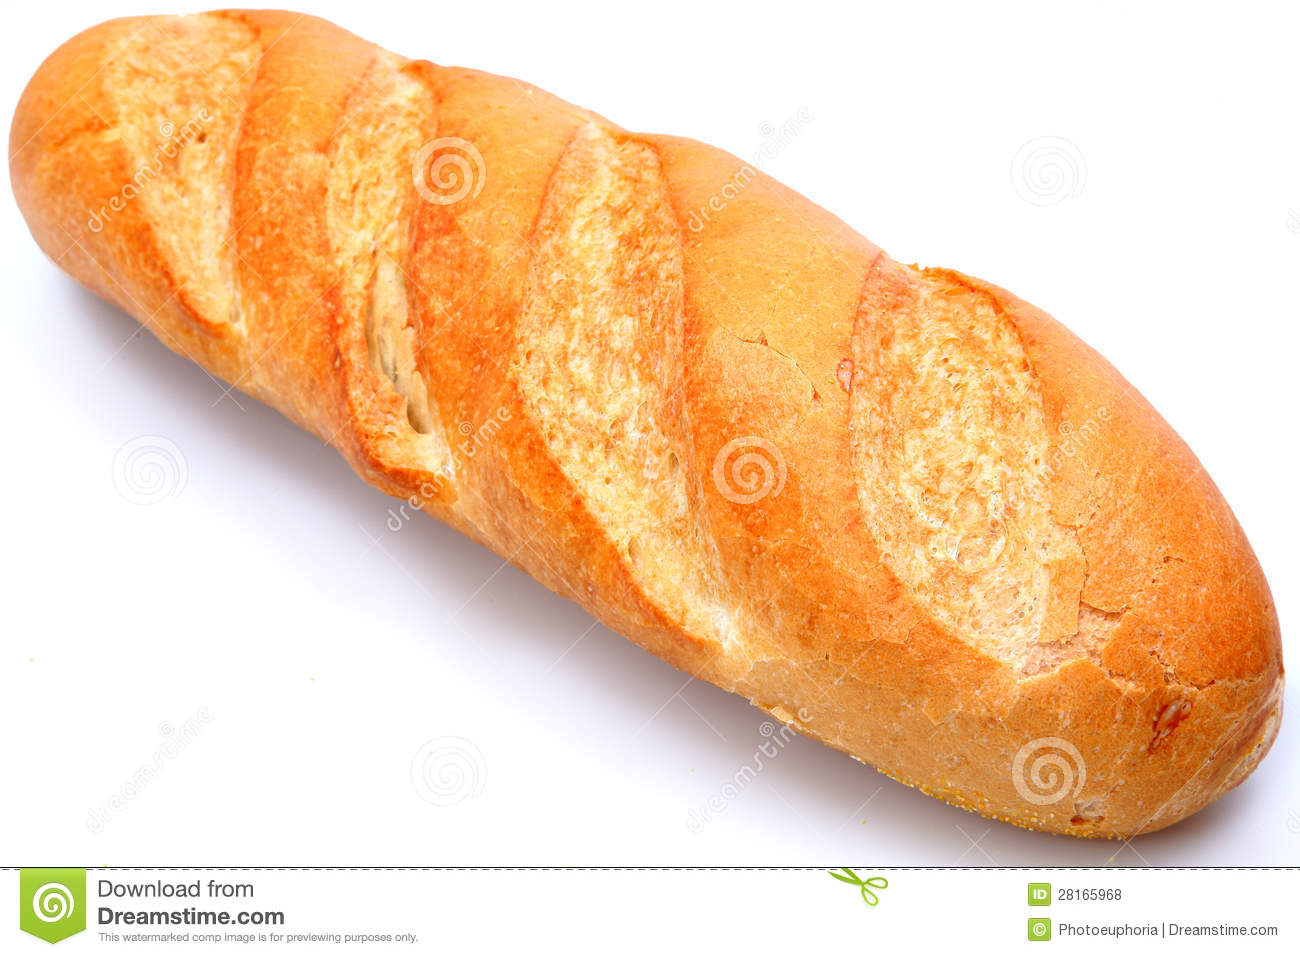 Golden Brown Loaf Of French Baguette Bread Royalty Free Stock Photos ...